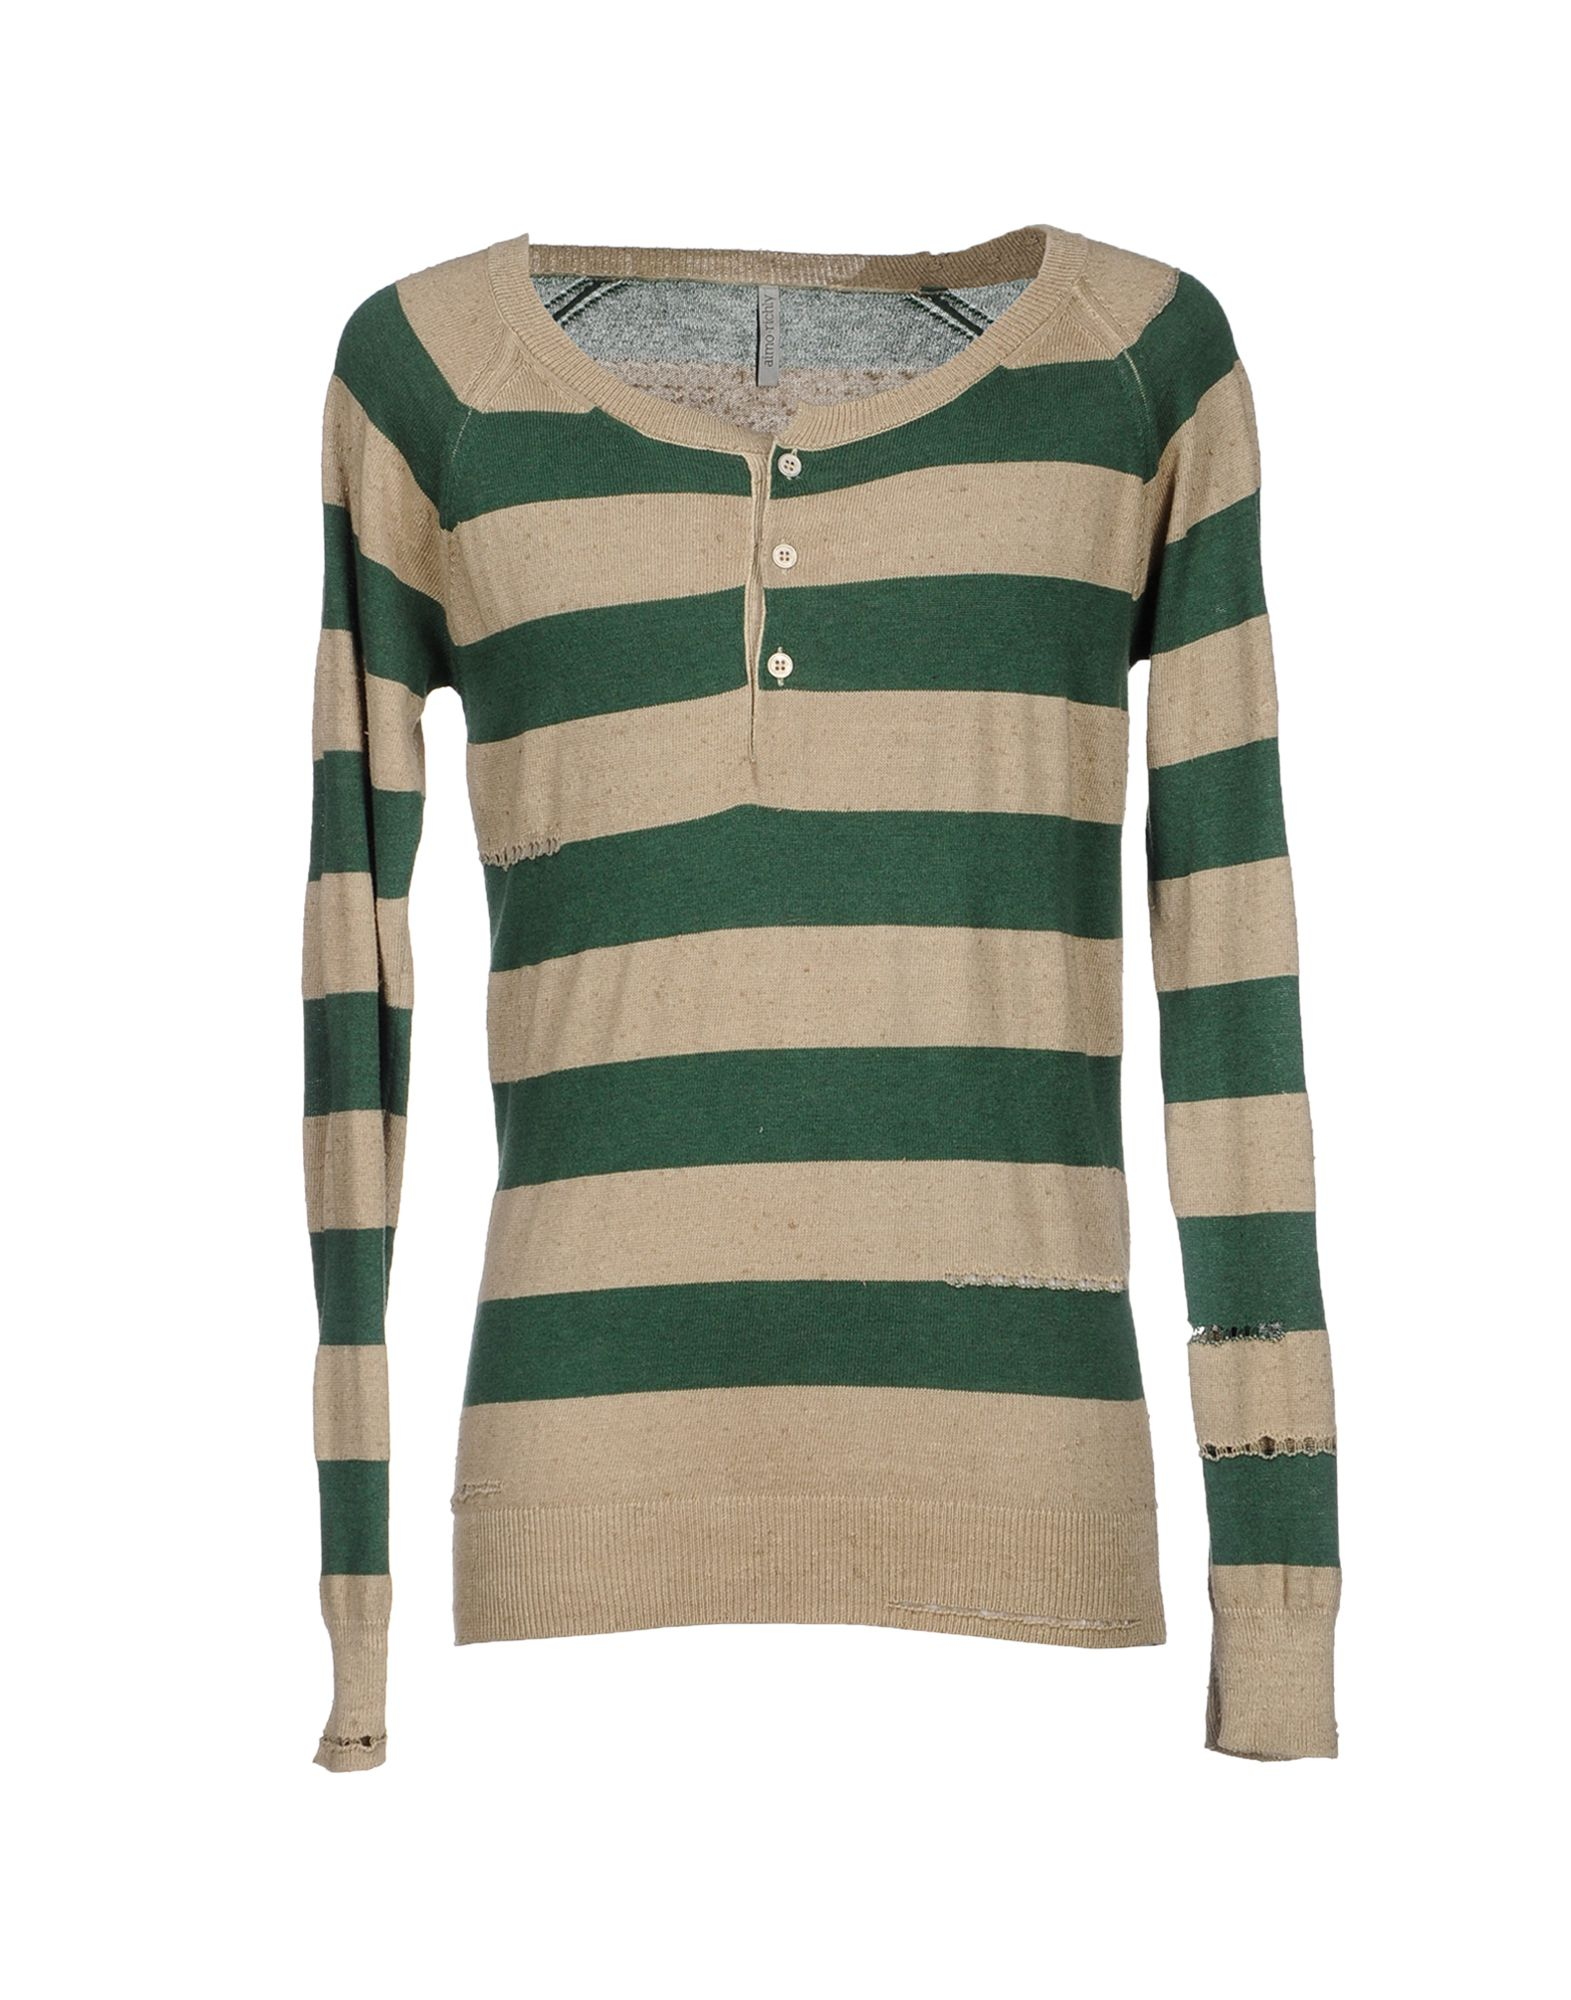 AIMO RICHLY Sweater in Green